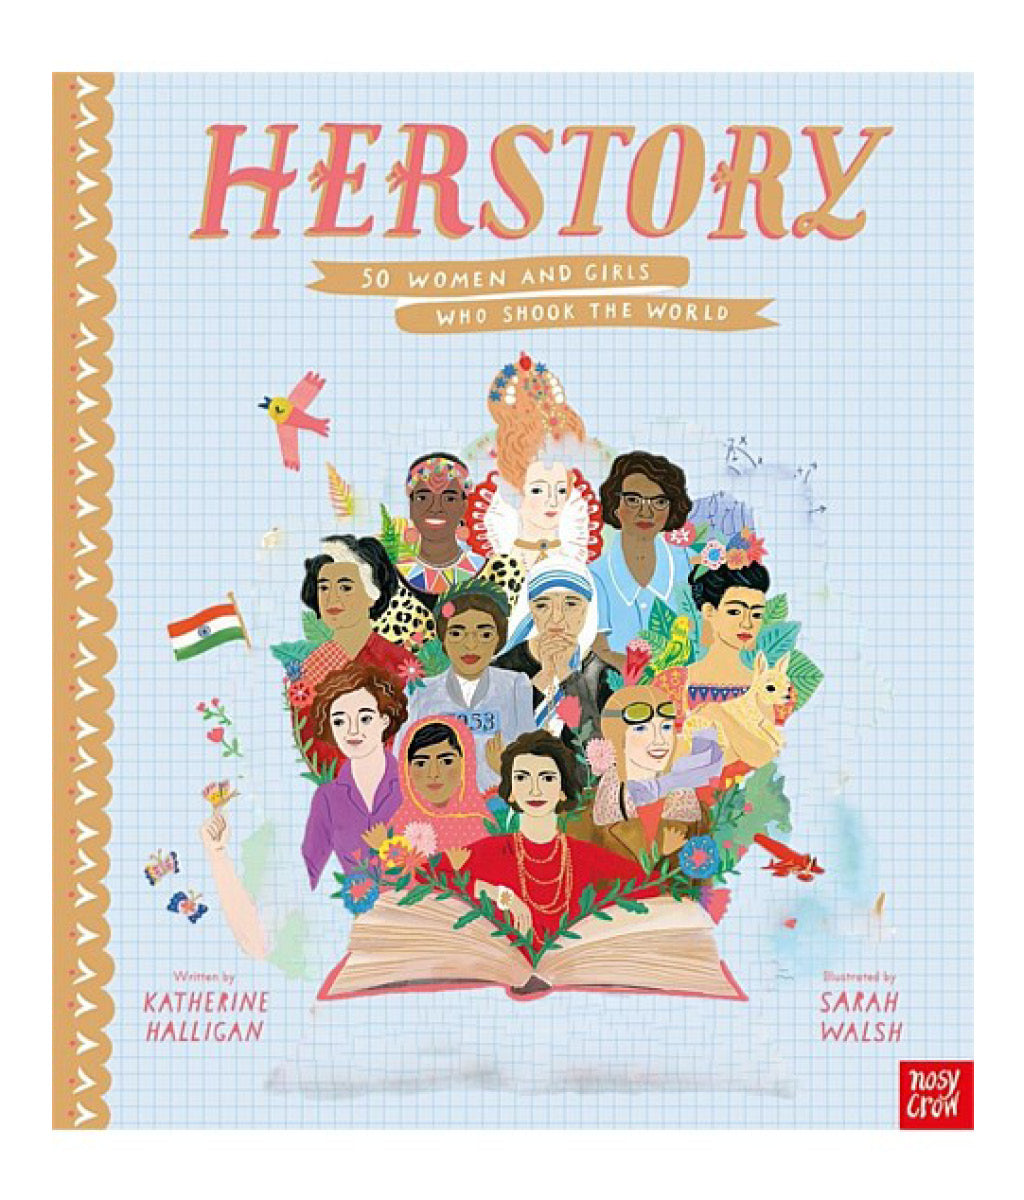 Herstory: 50 women and girls who shook the world by Katherine Halligan, Sarah Walsh